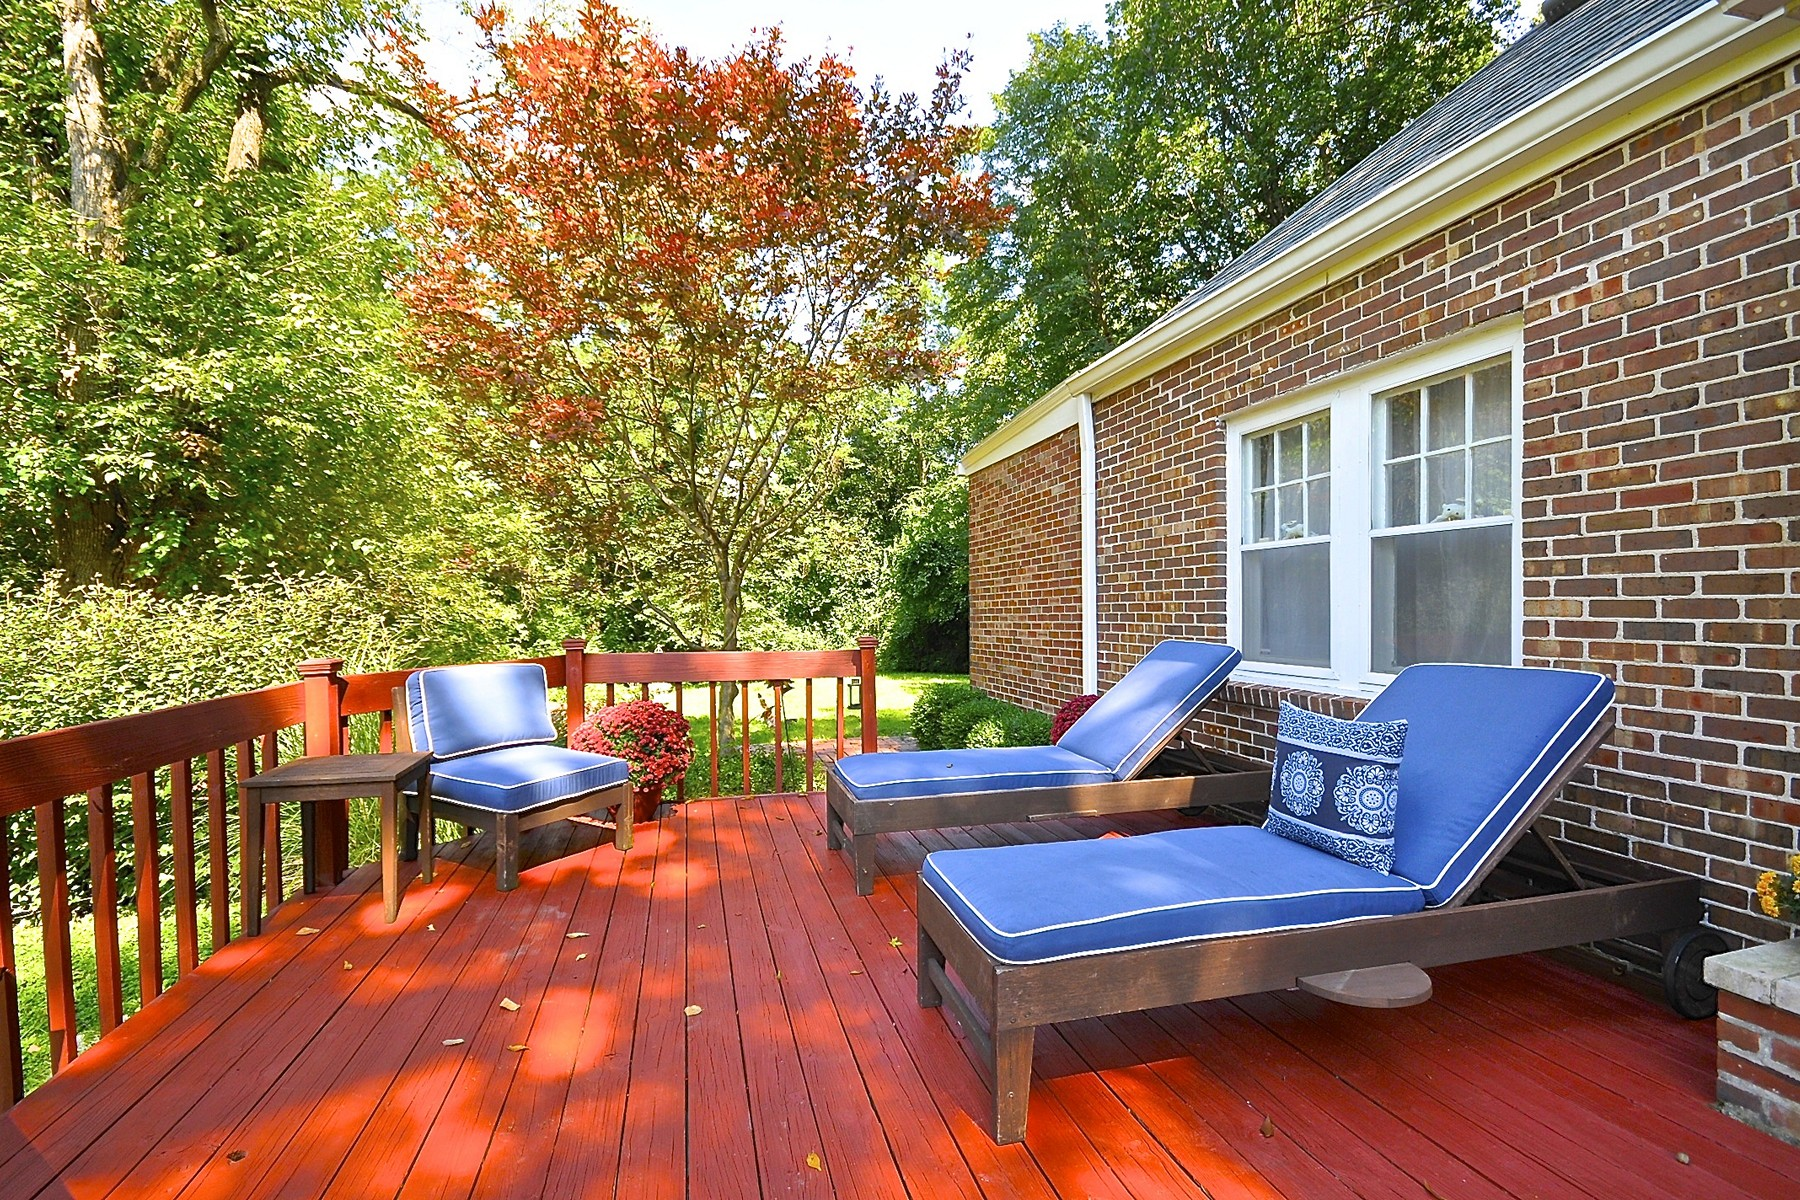 Single Family Home for Sale at Enchanting Cottage Extensively Renovated 1414 E 80th Indianapolis, Indiana 46240 United States